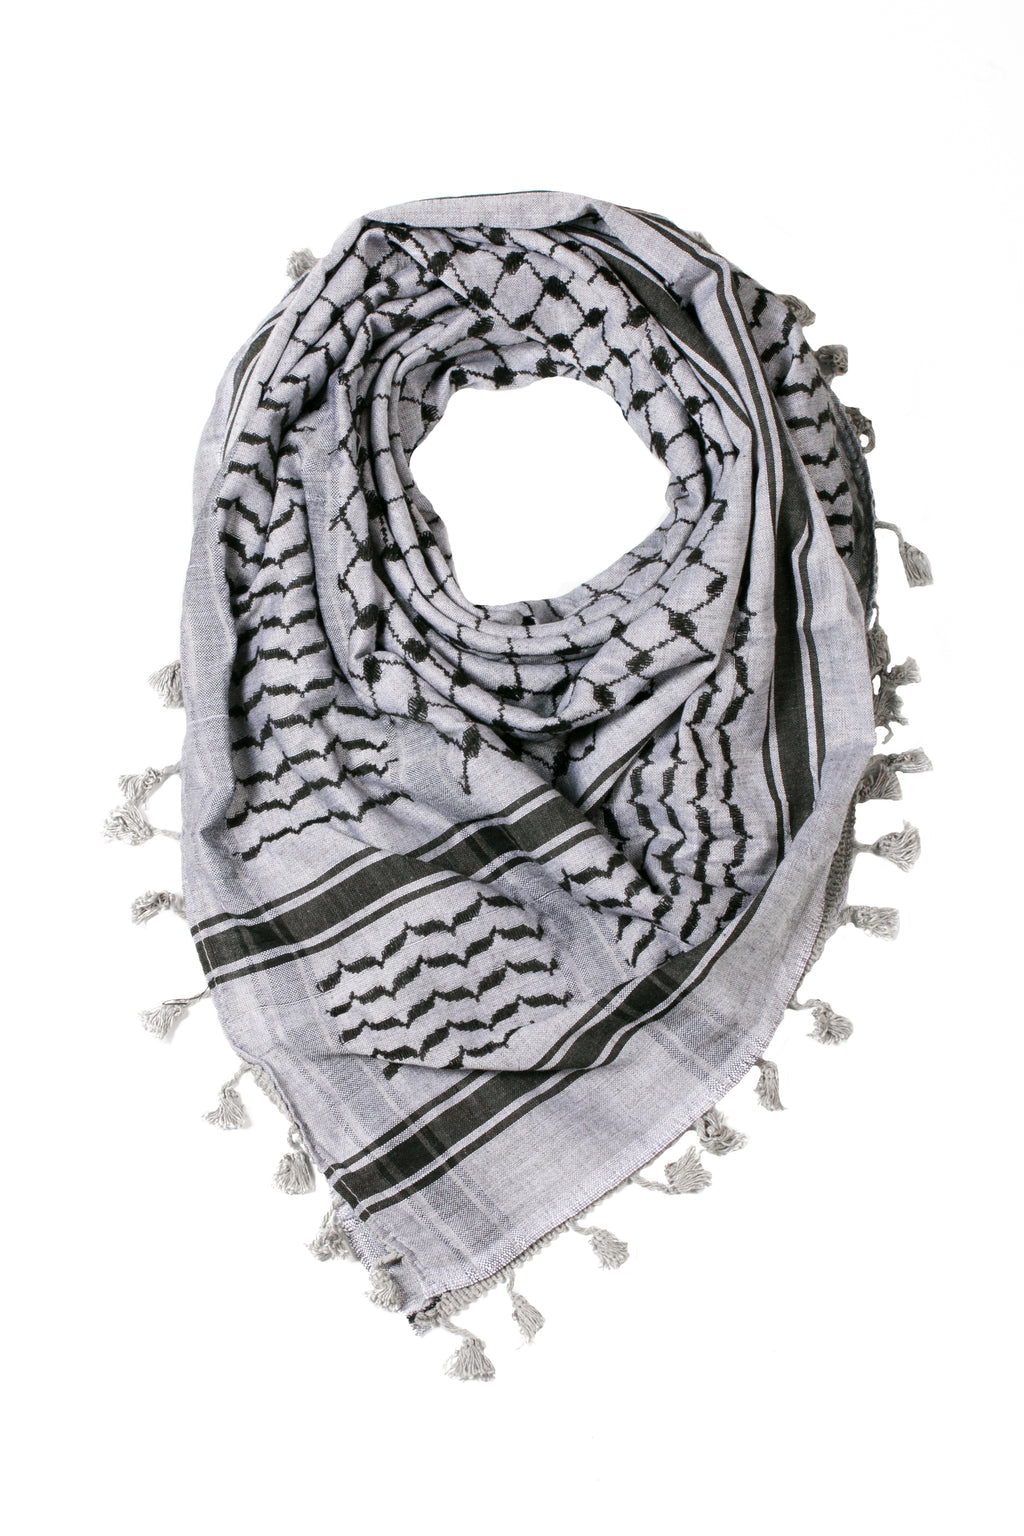 traditional Hirbawi black and gray Palestinian keffiyeh